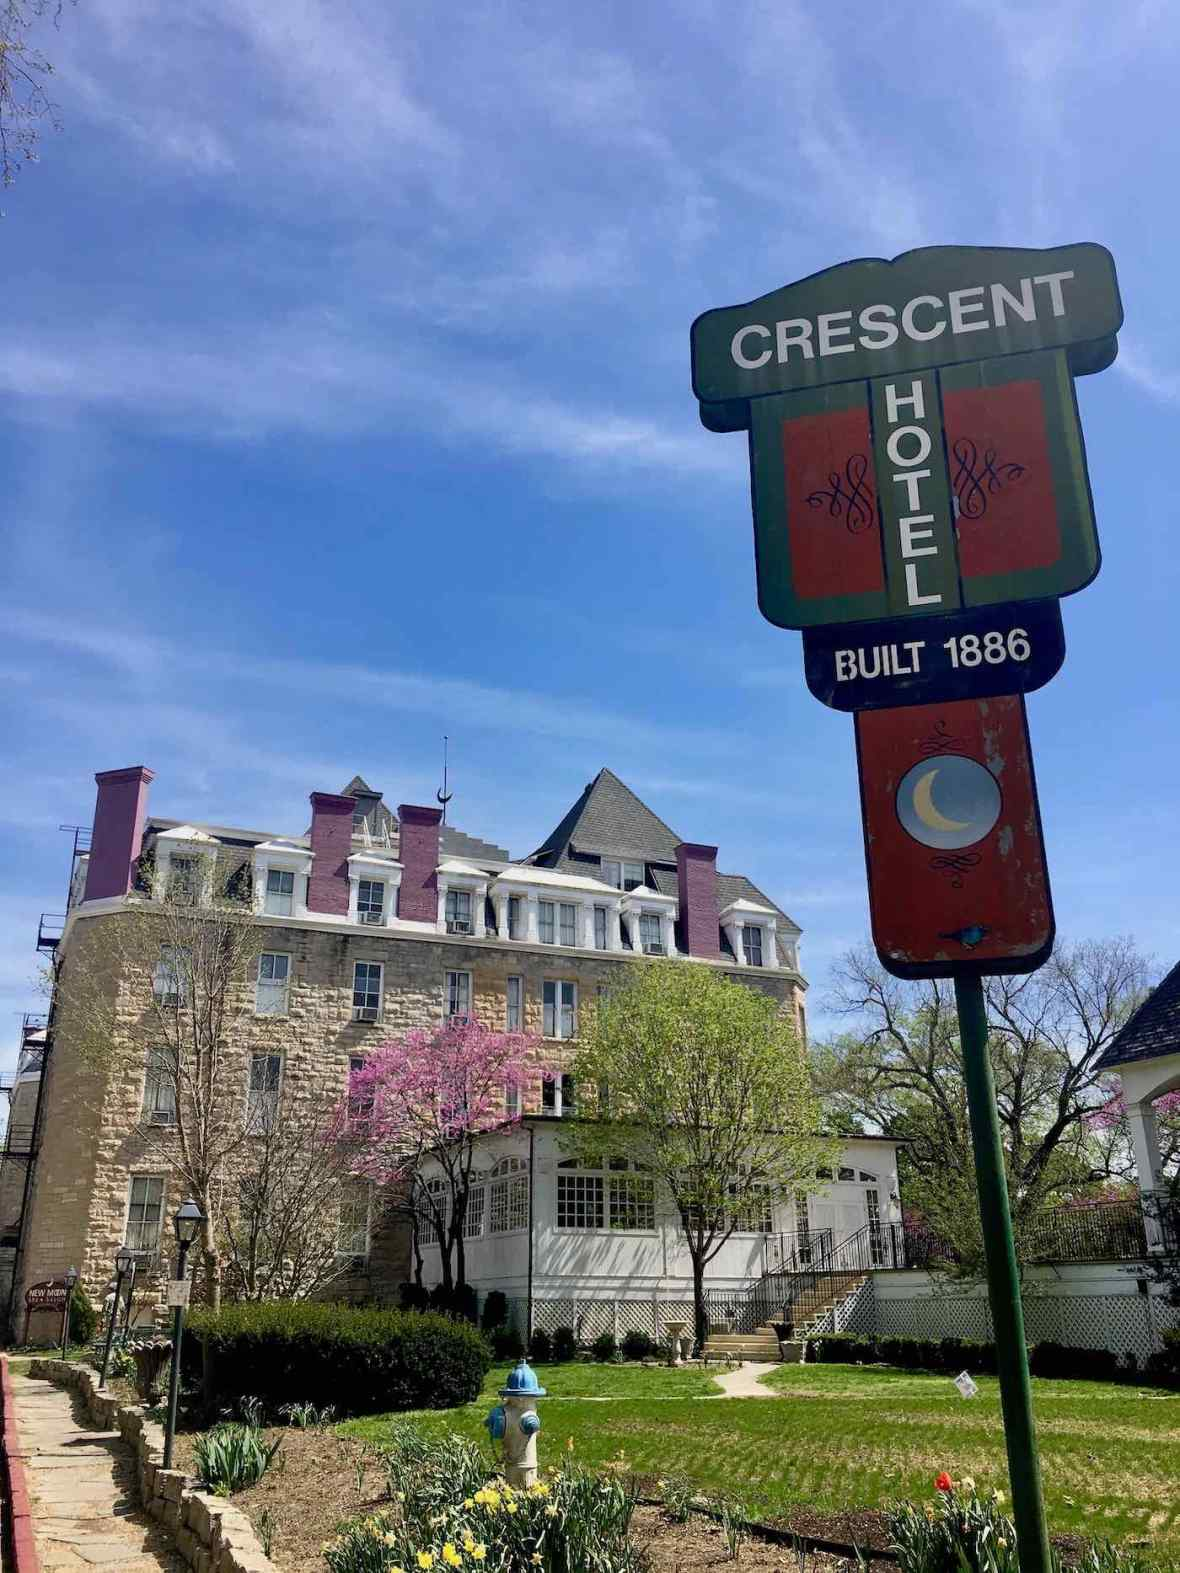 Historic Crescent Hotel and Spa in Eureka Springs, Arkansas